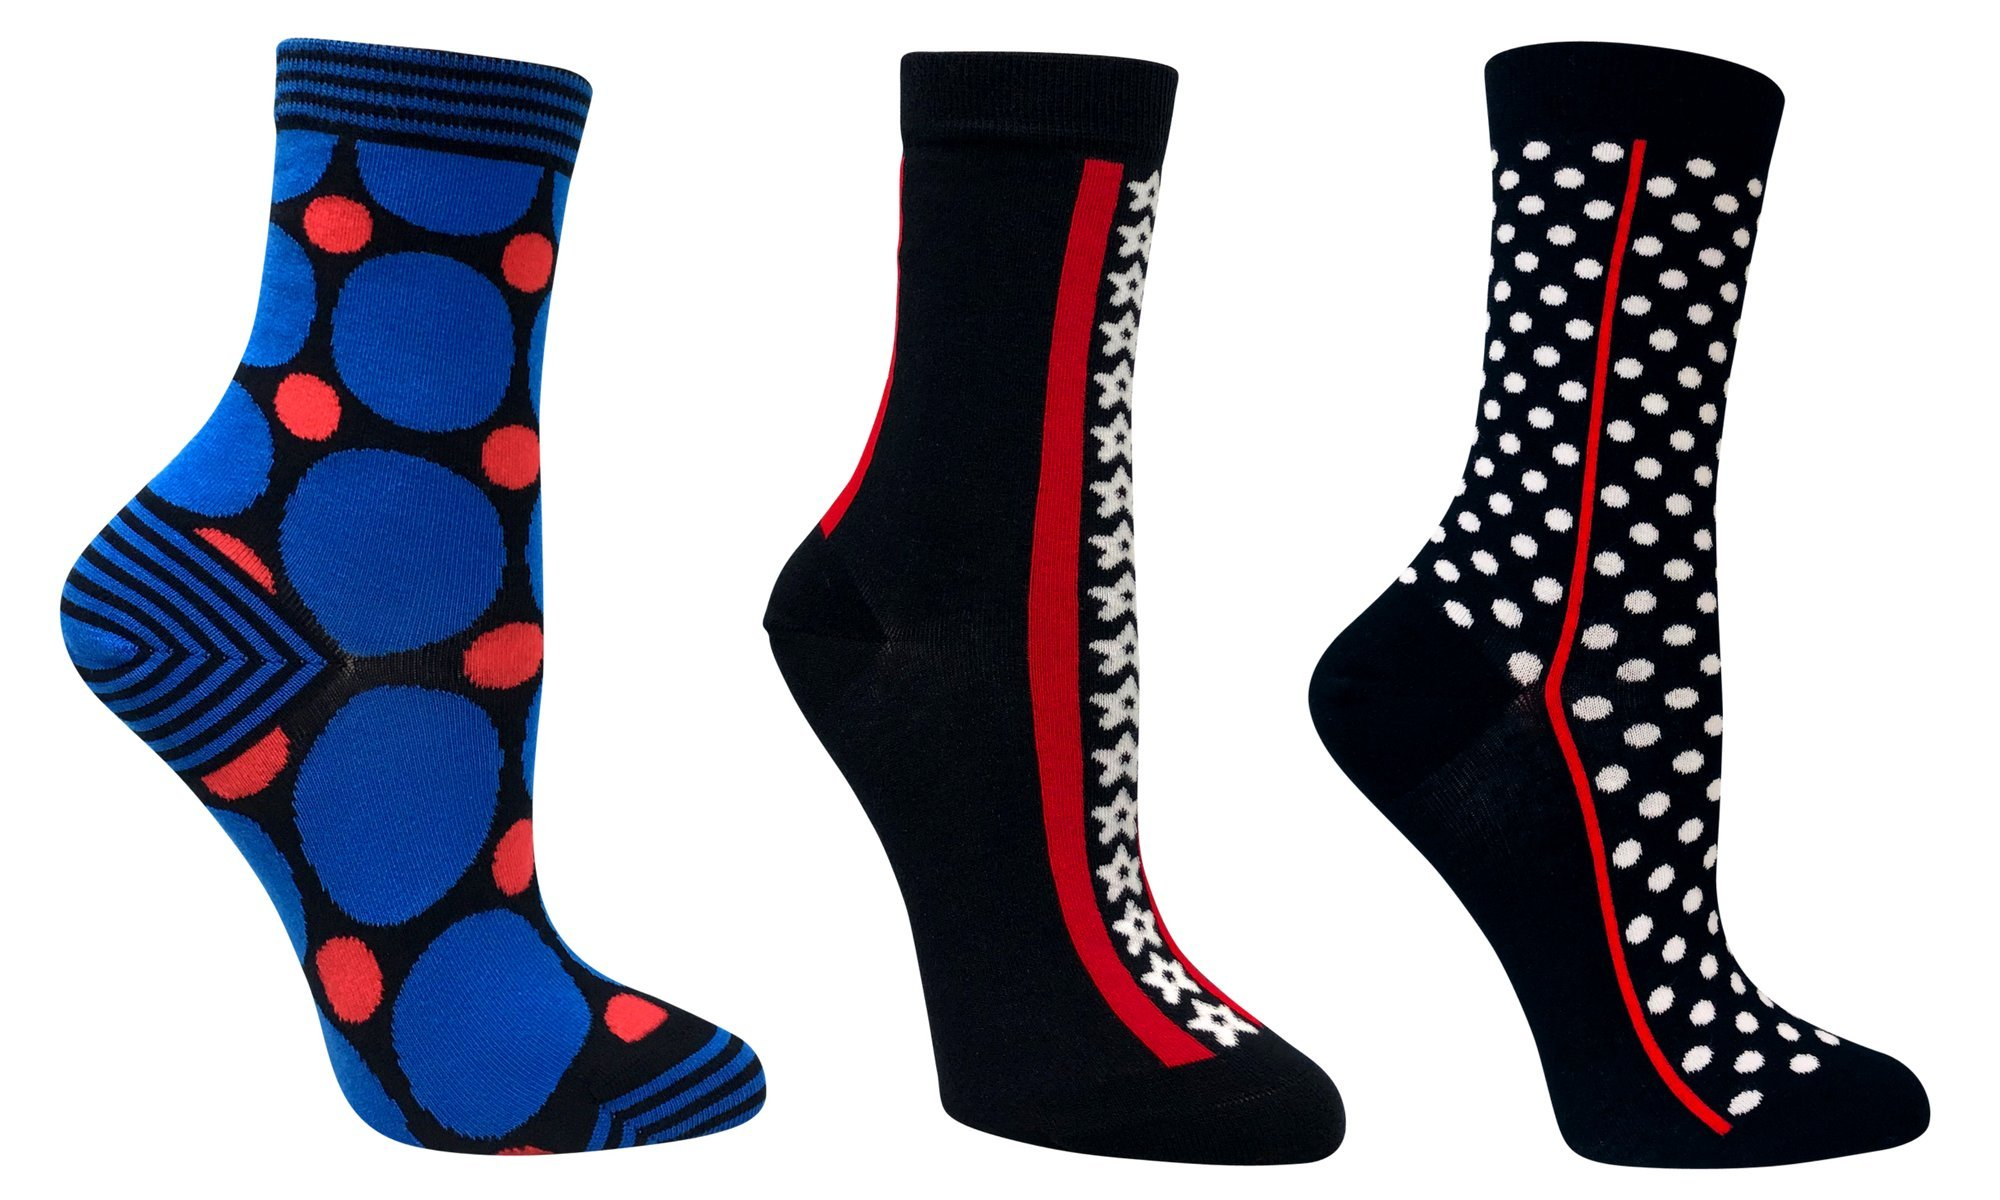 3 PACK WOMEN'S ORGANIC COTTON PATTERNED FUN CREW TROUSERS SOCKS WITH SEAMLESS TOES (NAVY)